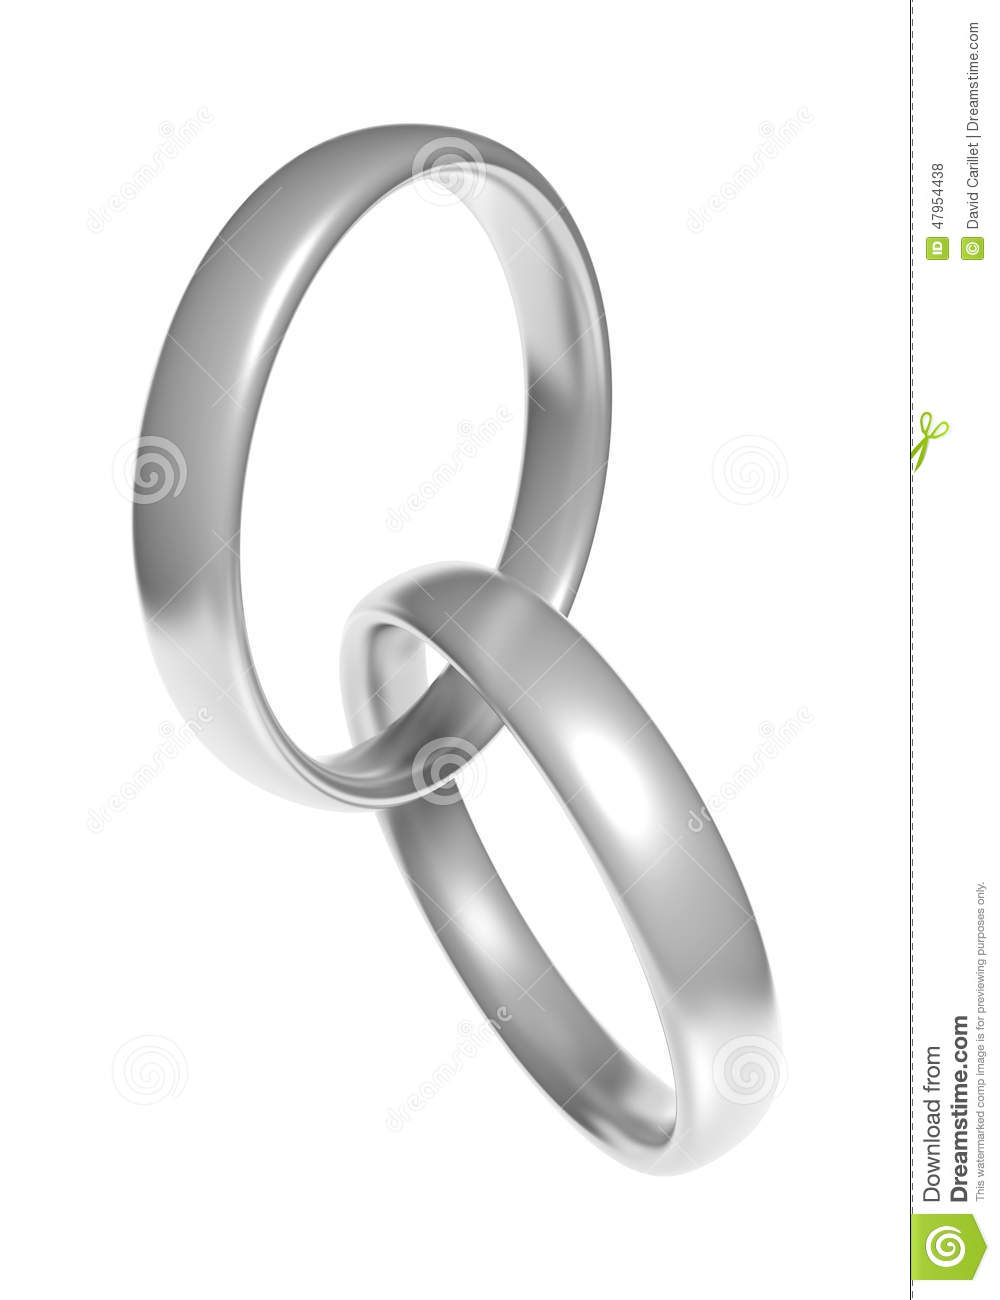 that see for exchanged as on ring the symbol engagement years many absolutely a share of beautiful wedding exchanging tradition gold rings couple trust couples back love to bands designs and in dates are white